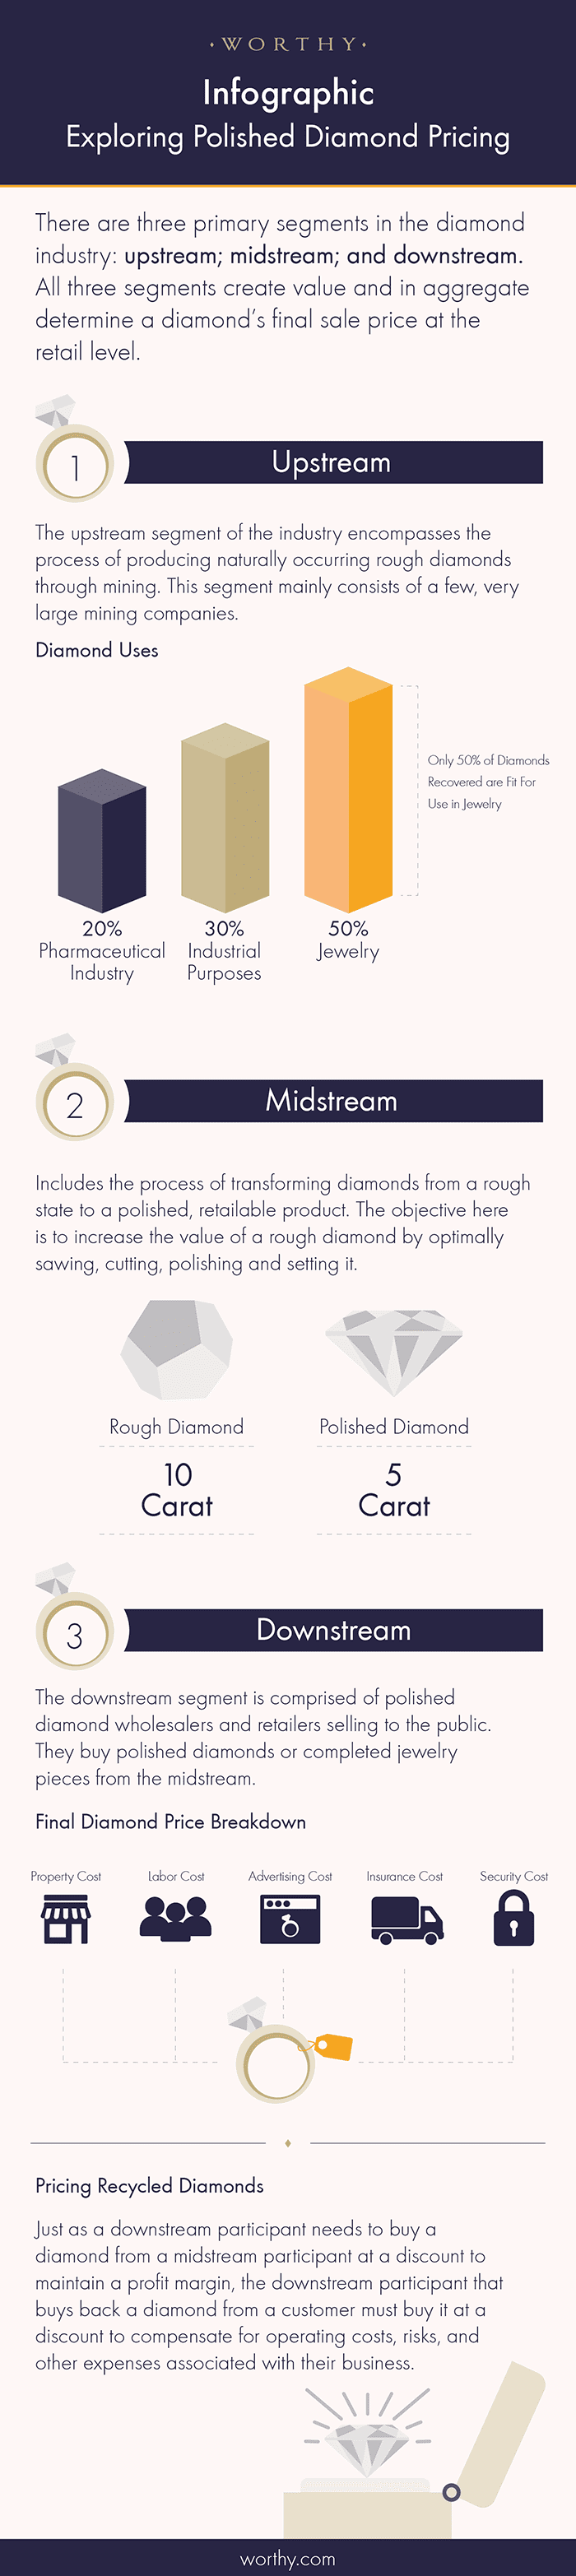 diamond_pricing_infographic_part1